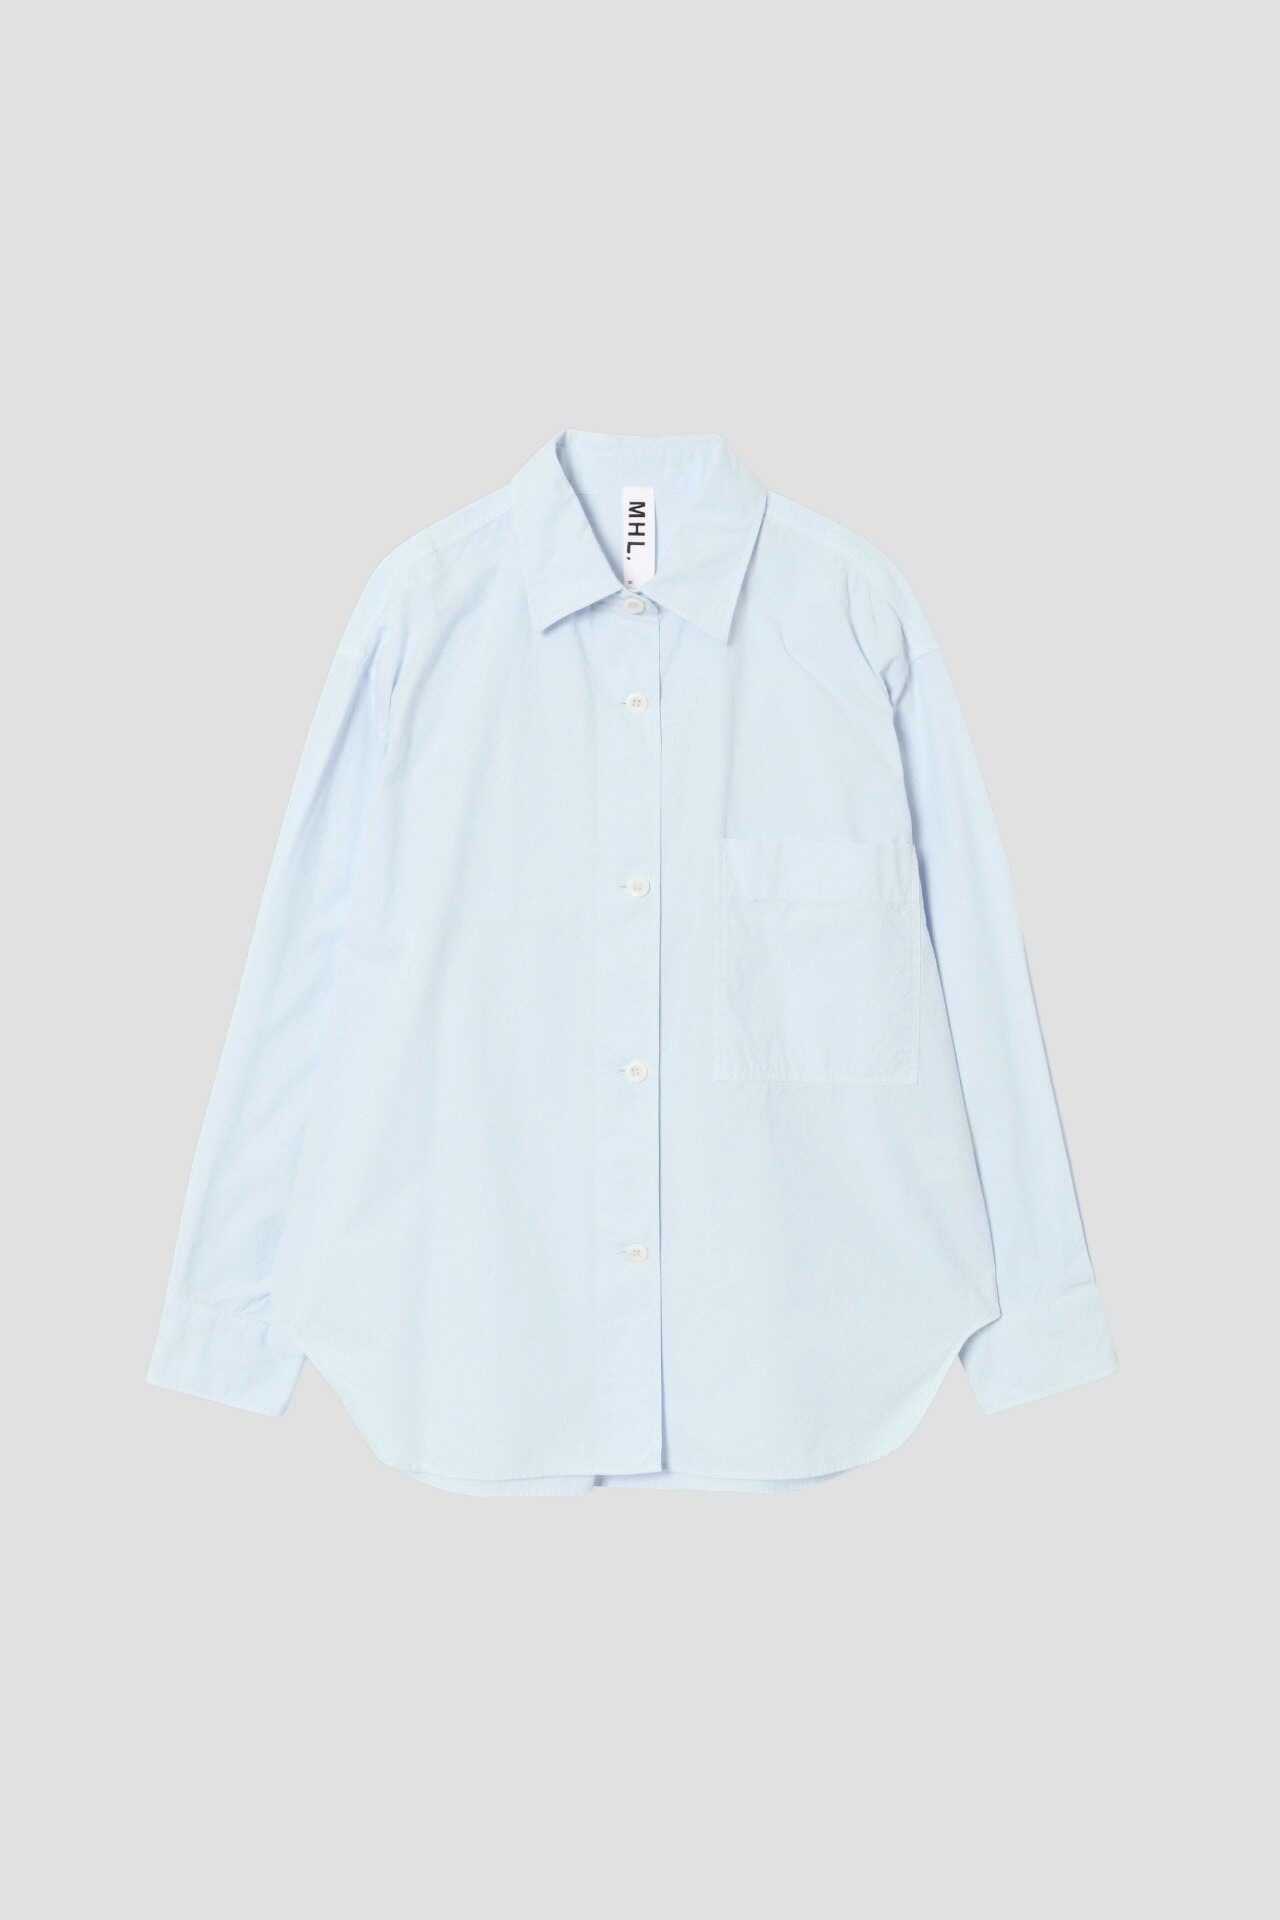 DENSE COTTON POPLIN(MHL SHOP限定)6